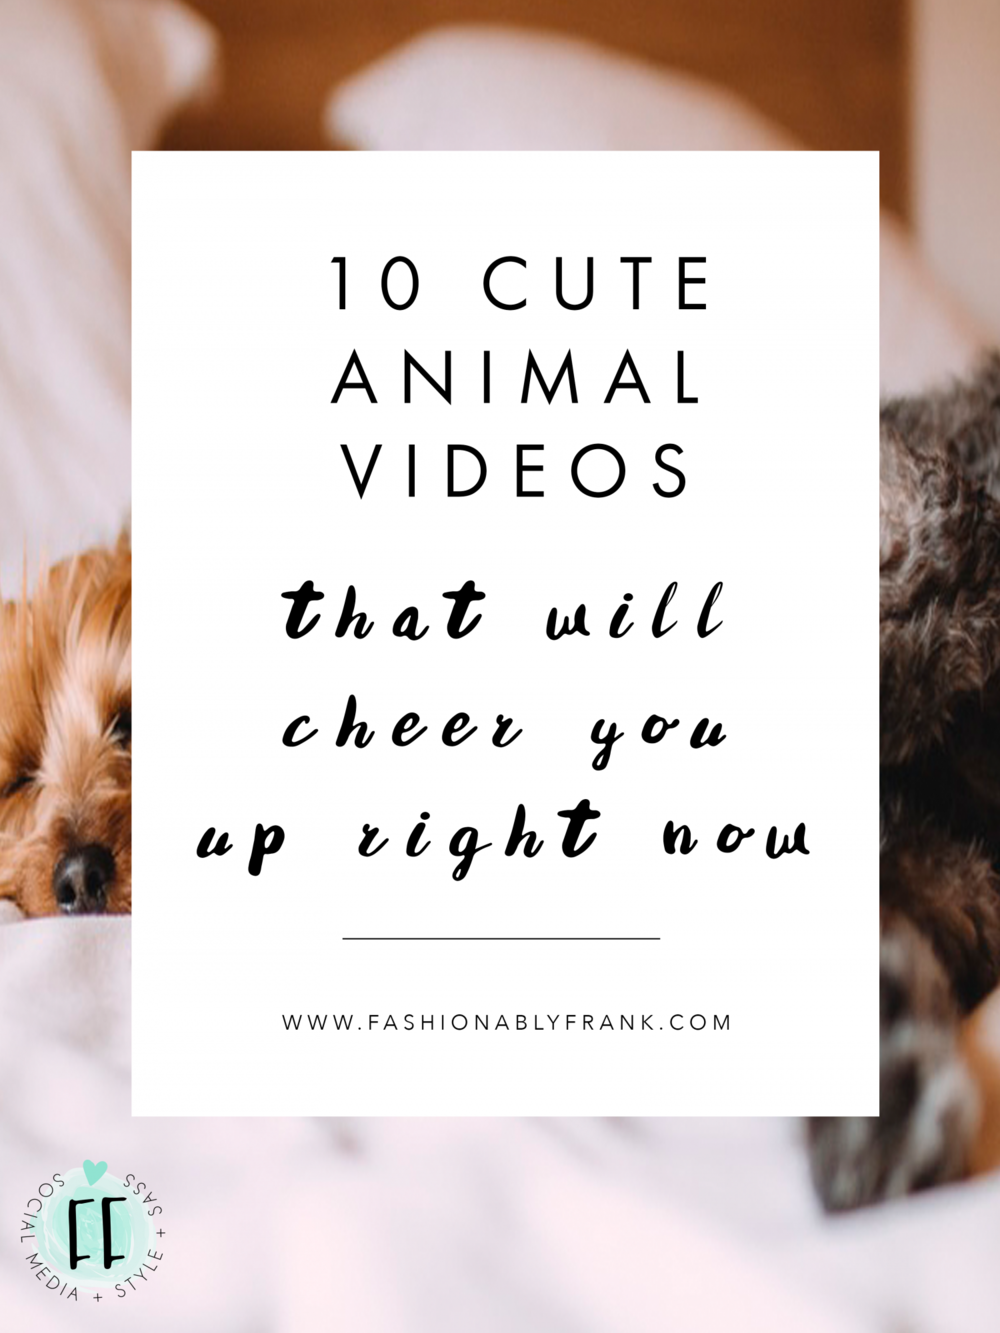 10 Cute Animal Videos That Will Cheer You Up Right Now | Fashionably Frank